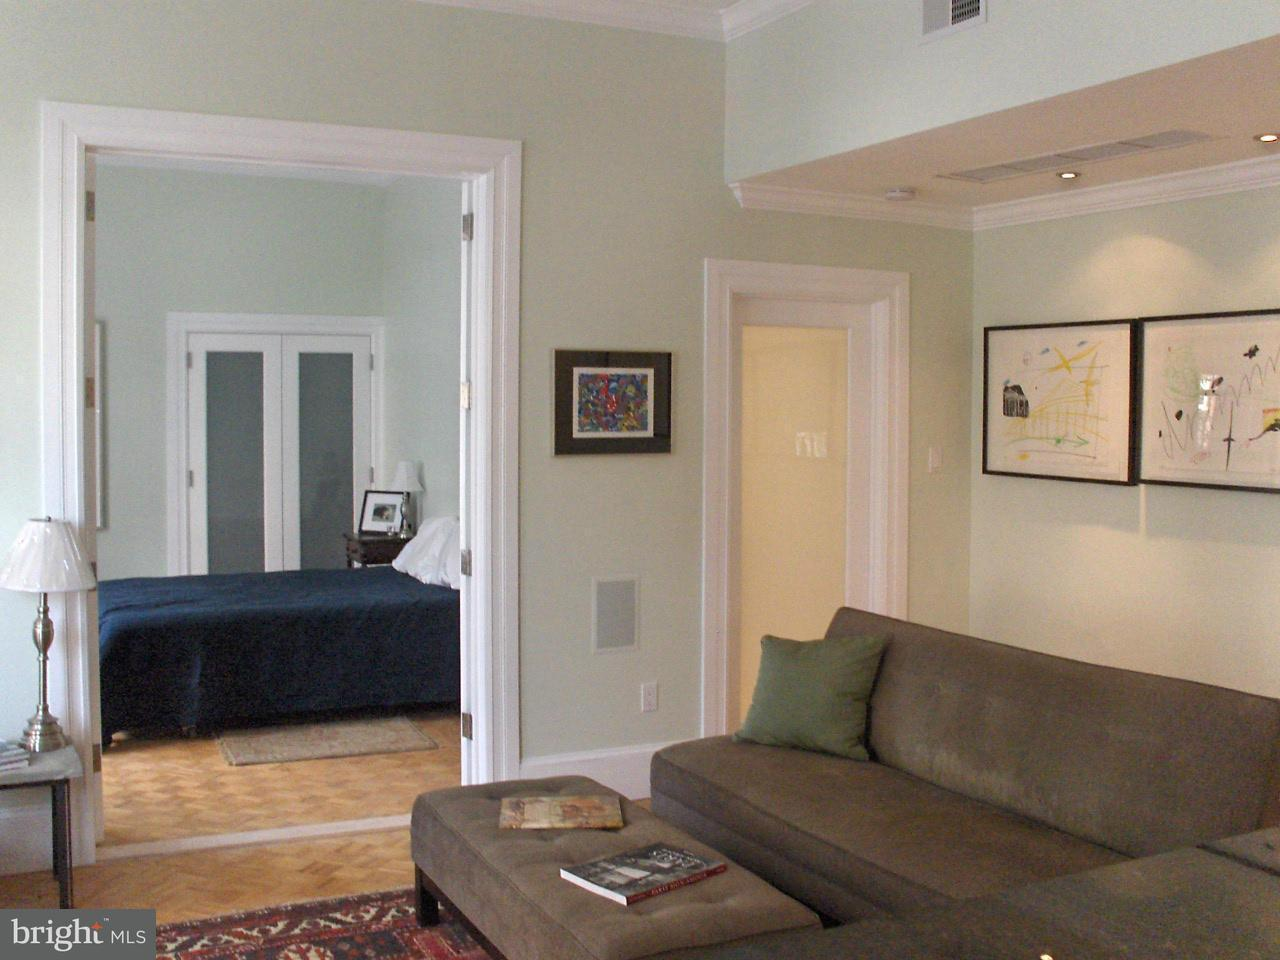 Condominium for Rent at 1851 Columbia Rd NW #107 Washington, District Of Columbia 20009 United States